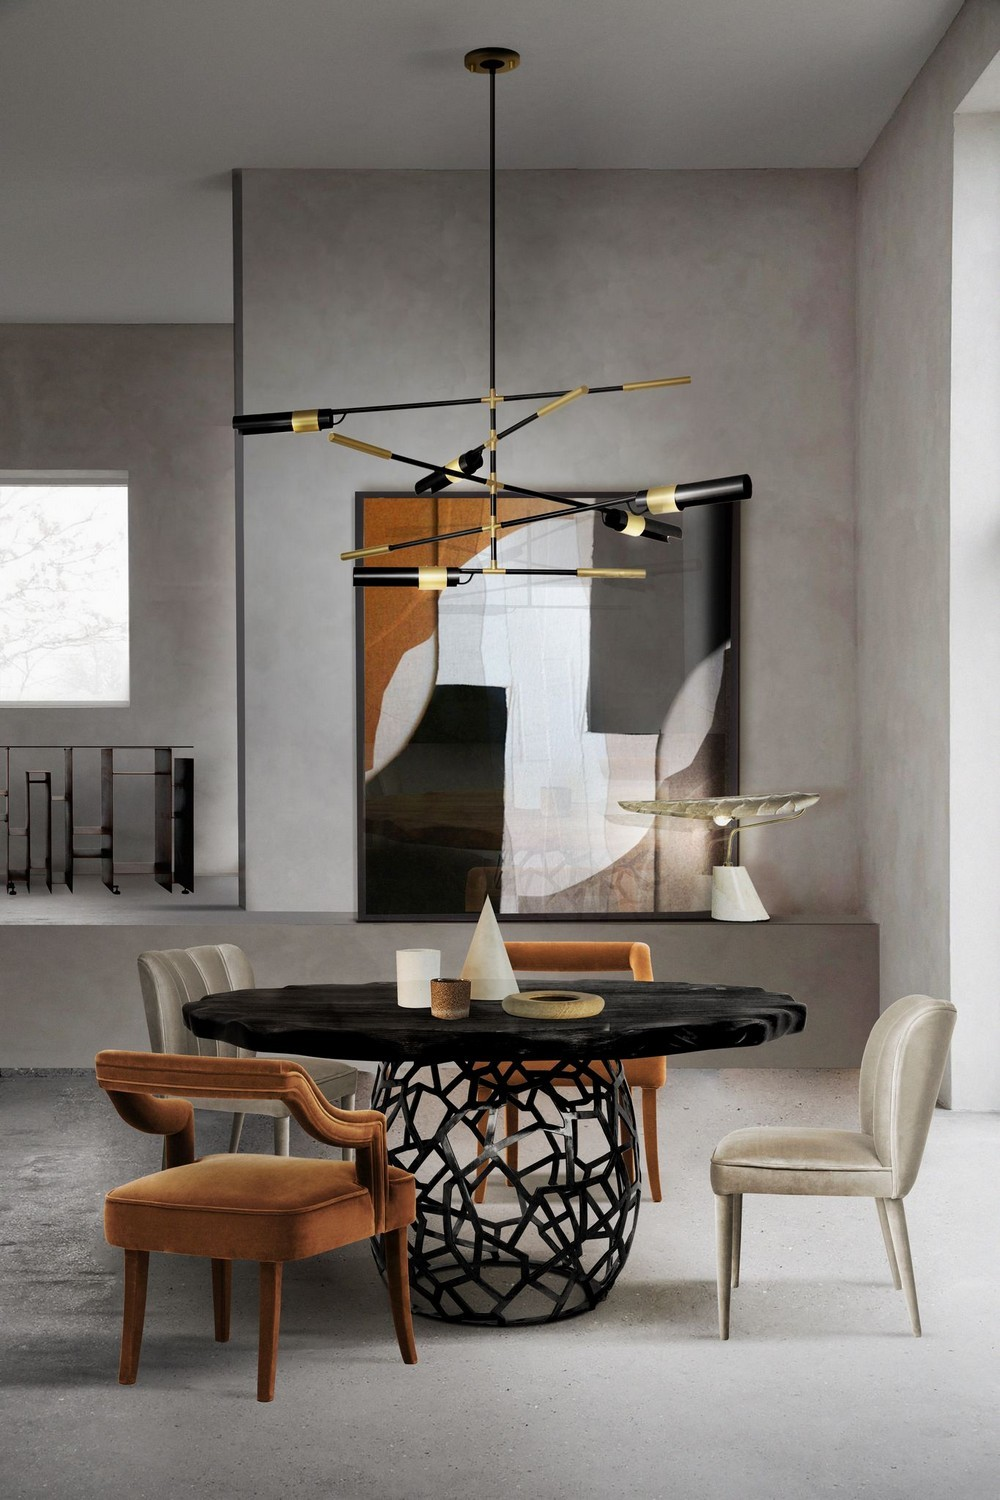 The Perfect Element For Stylish Settings: 10 Dining Tables You'll Love dining tables The Perfect Element For Stylish Settings: 25 Dining Tables You'll Love working with wood modern dining tables 25 Modern Dining Tables With A Luxury Design working with wood